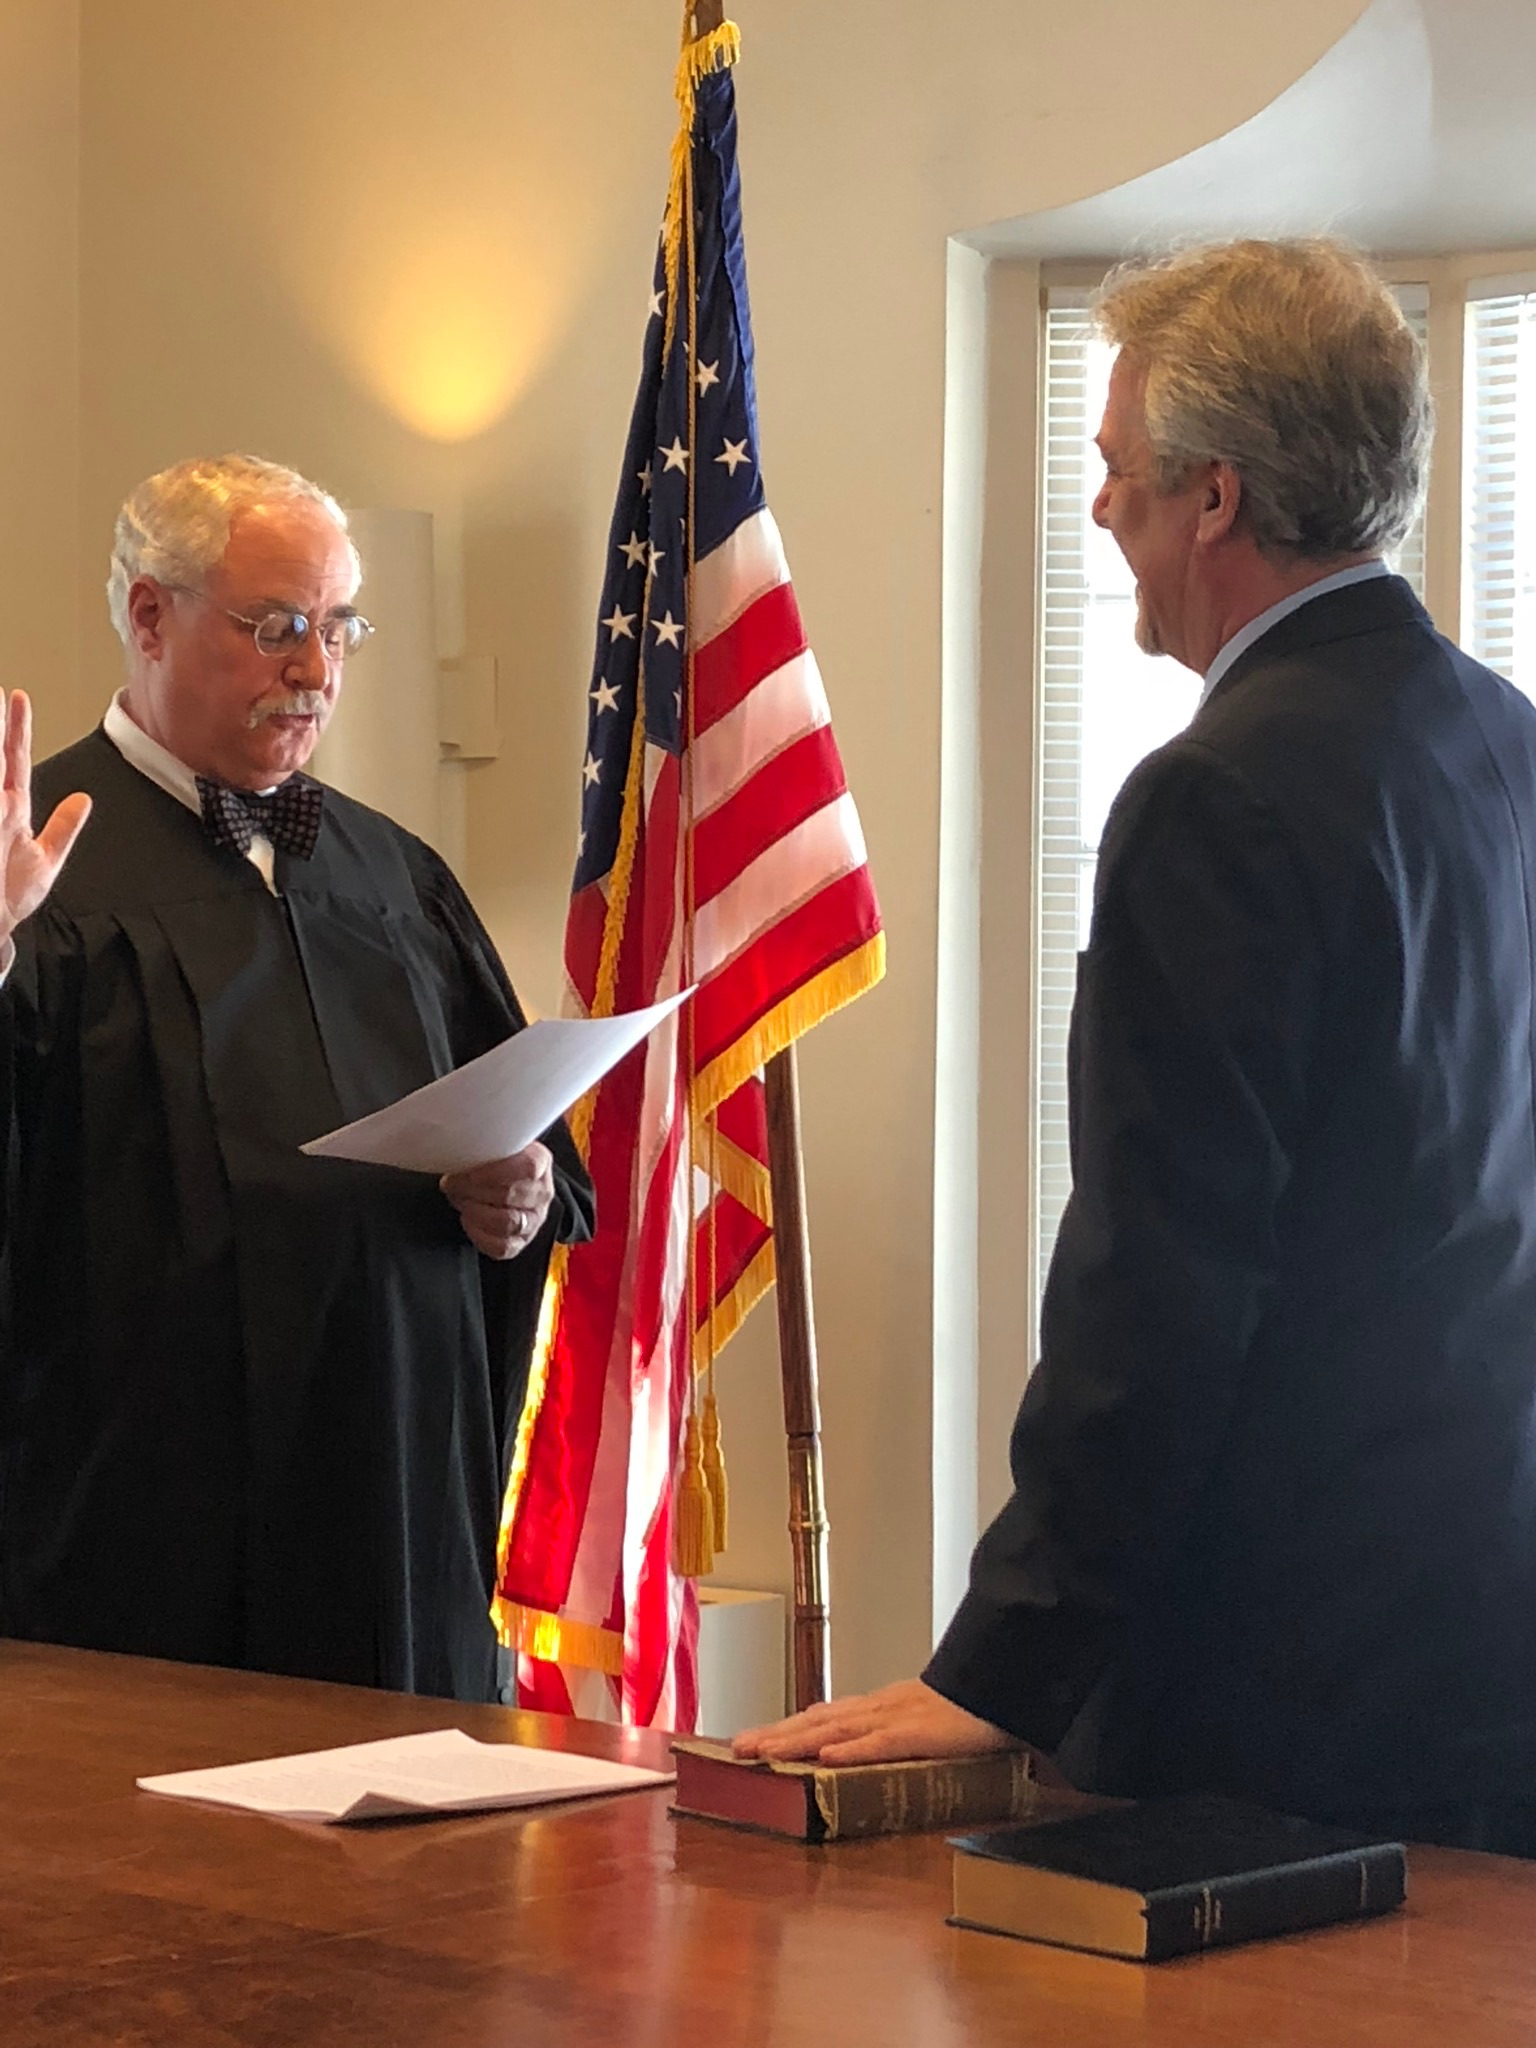 Town Justice Ira Clair swears in Kevin Hansan as Town Supervisor.